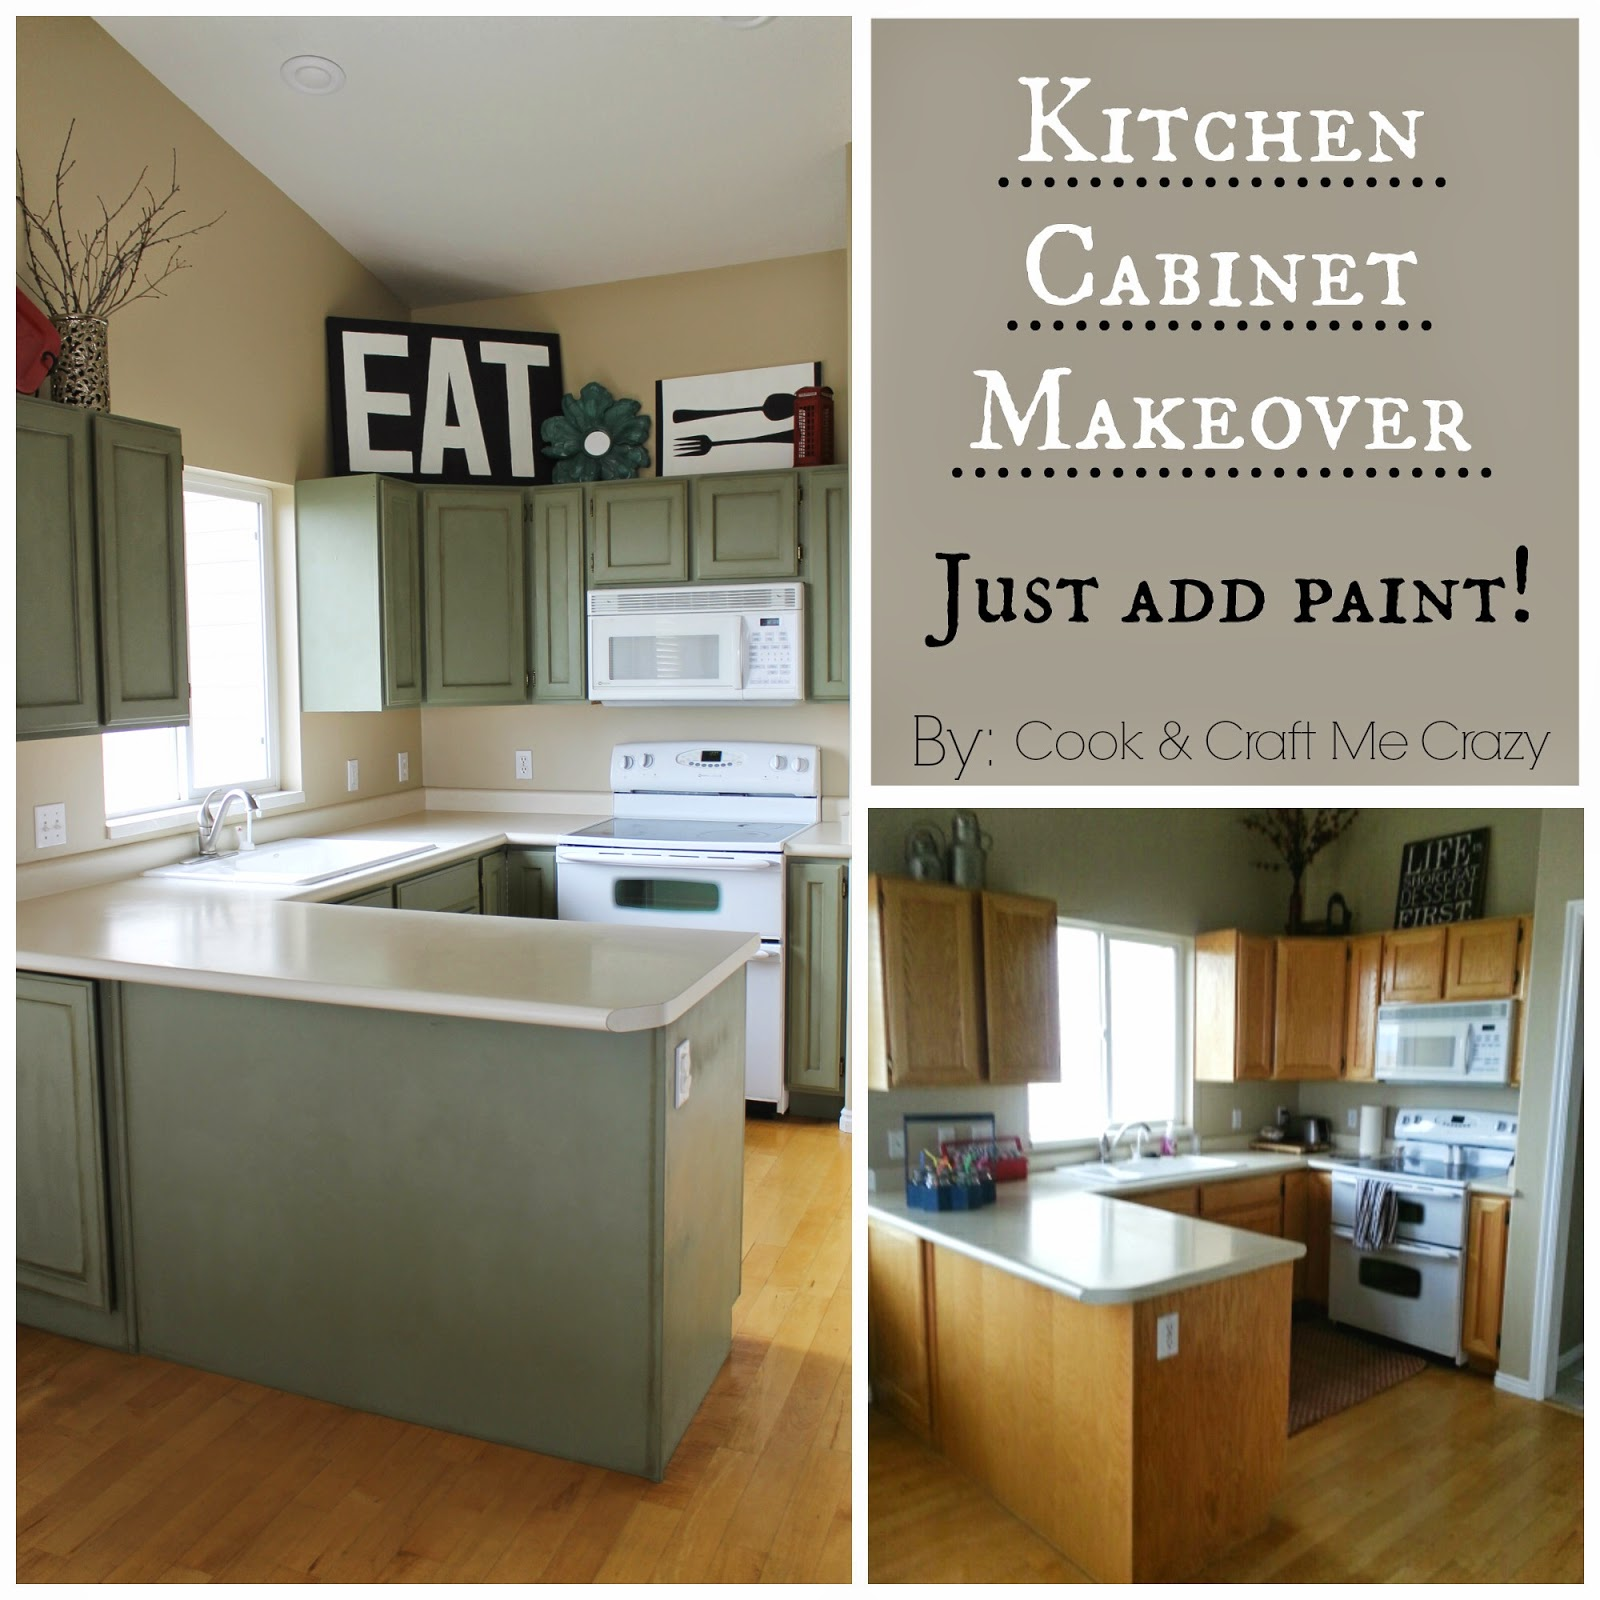 Cook And Craft Me Crazy: Kitchen Cabinet Makeover